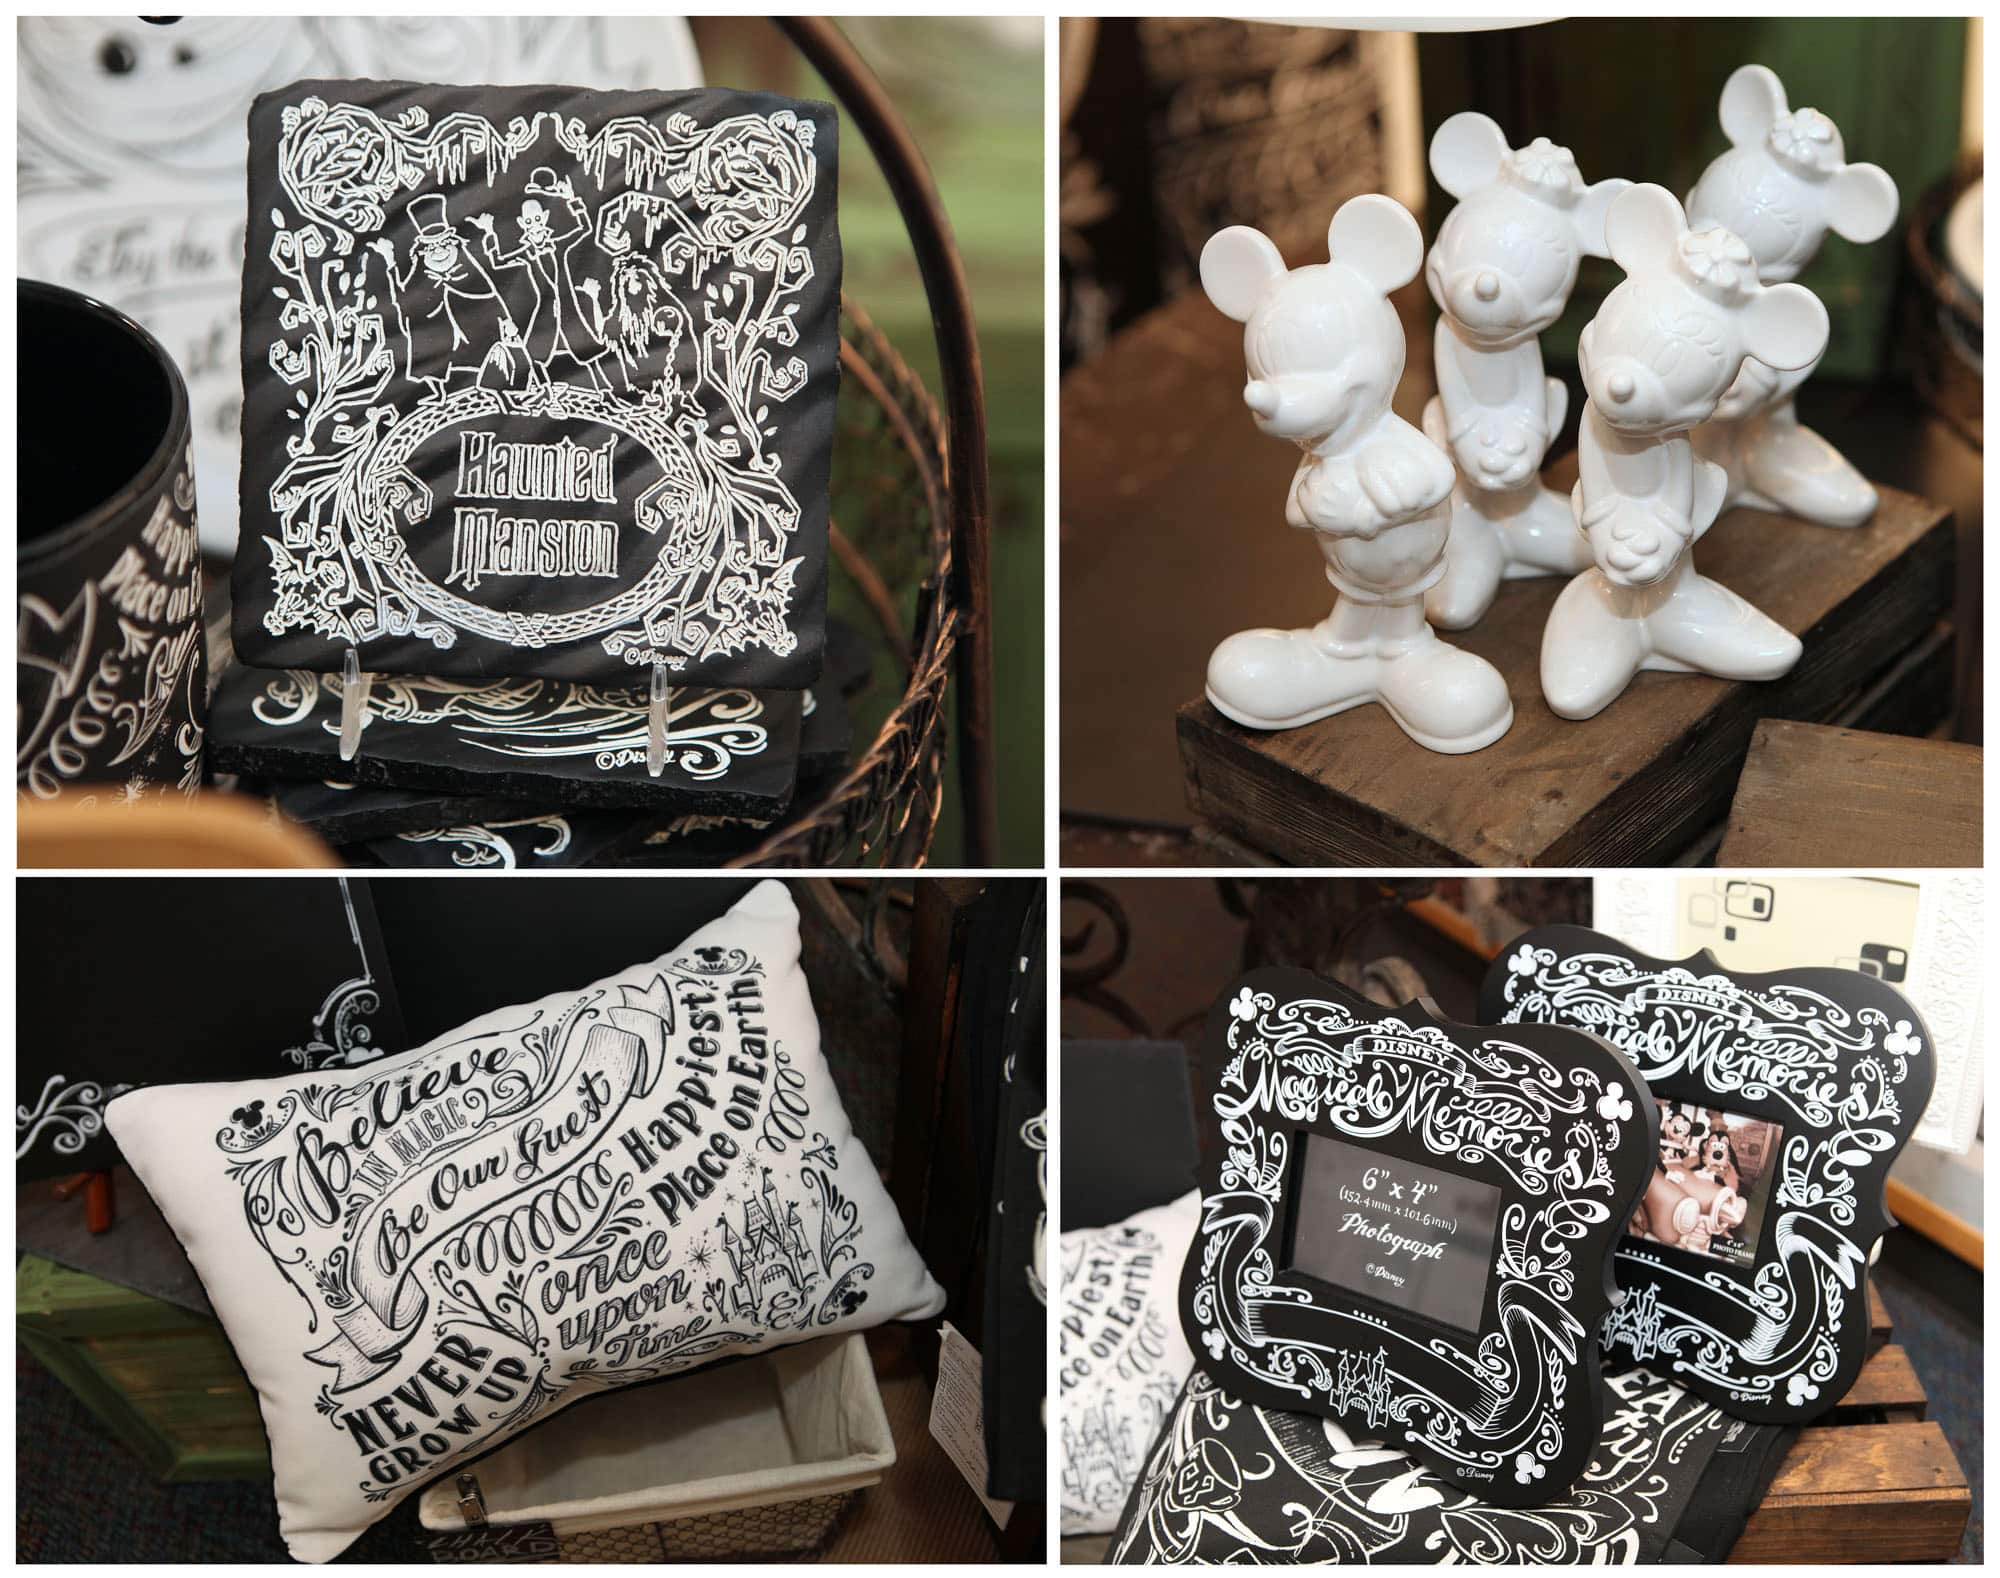 Chalkboard Art-Inspired Items Coming to Disney Centerpiece at Downtown Disney Marketplace in 2014